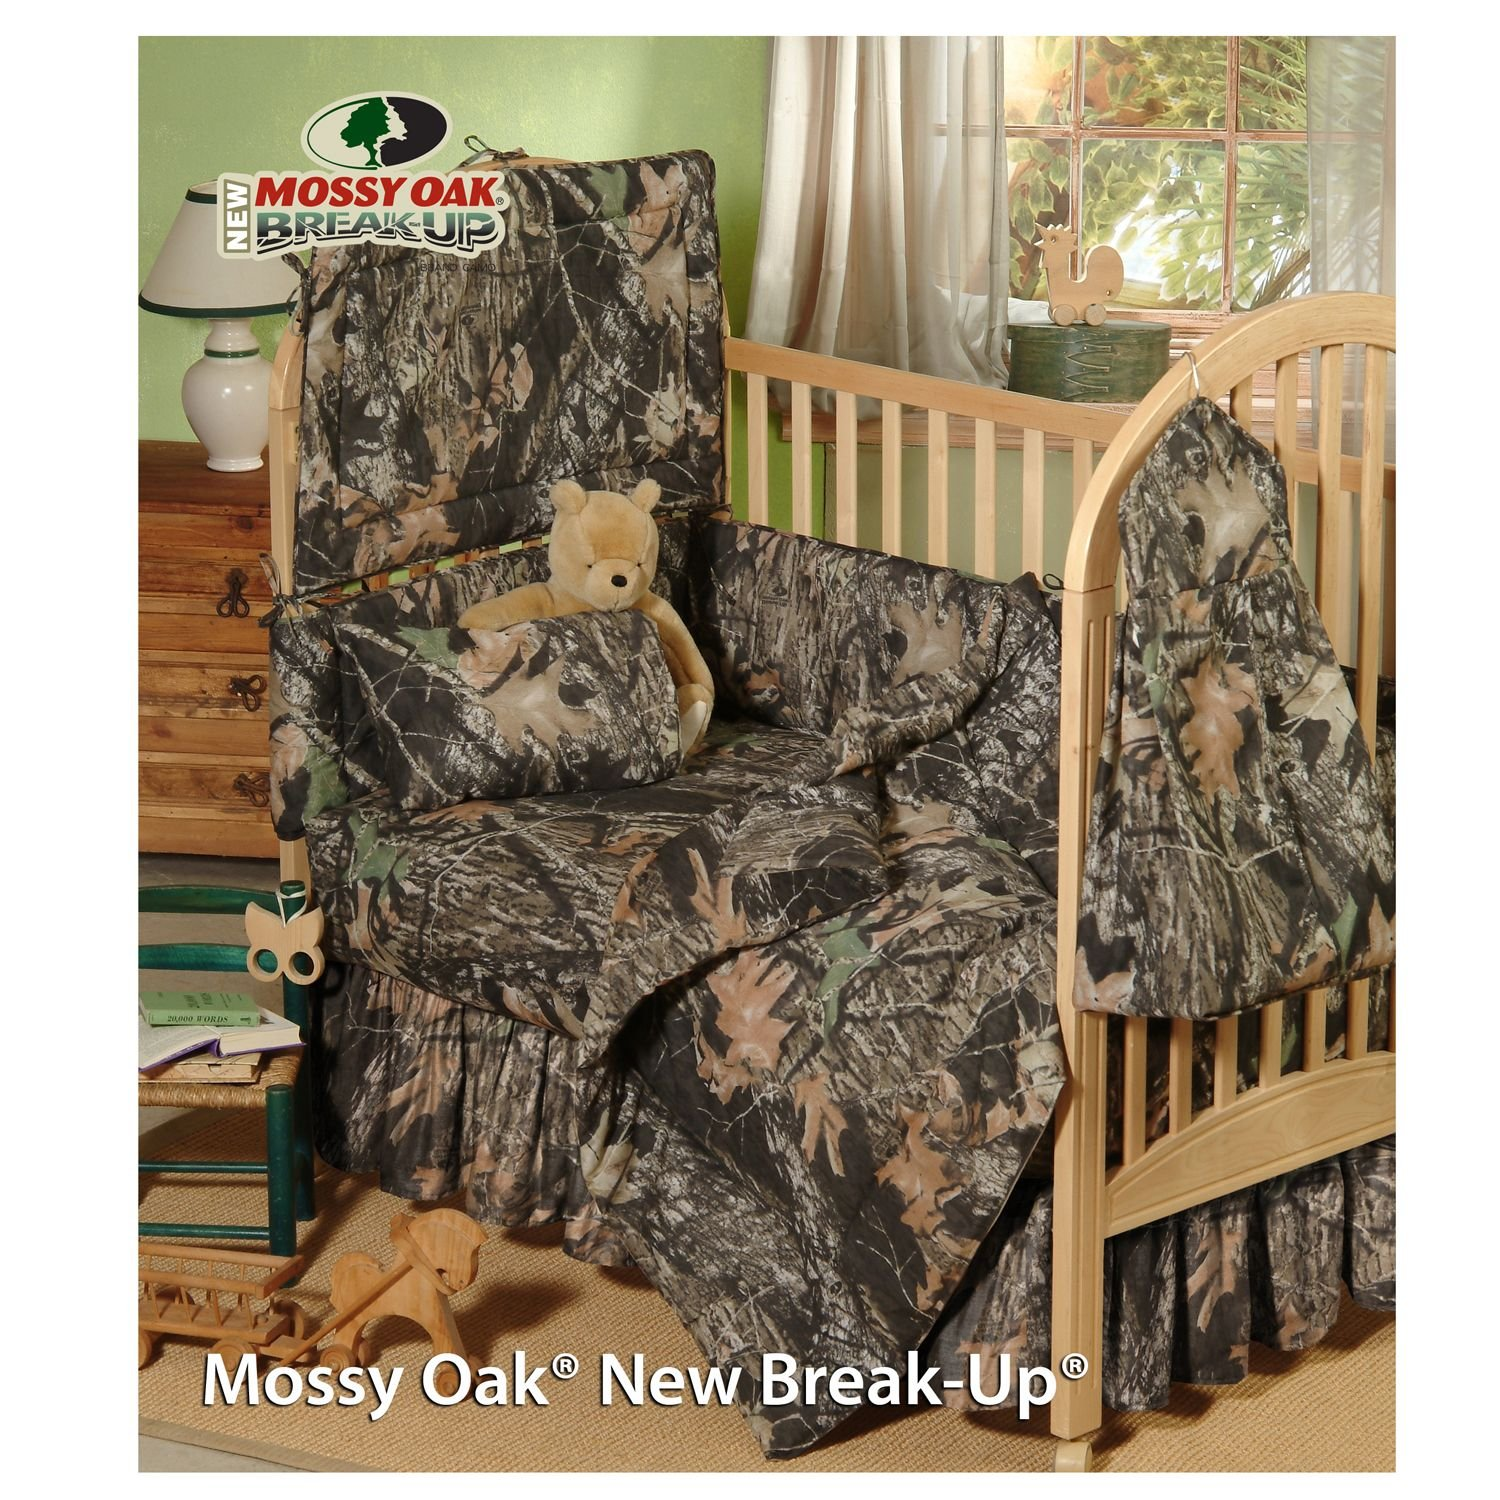 Amazon.com: Mossy Oak New Break Up Camo   6 Piece Crib Set Includes (Crib  Fitted Sheet, Crib Bumper Pad, Crib Headboard Pad, Crib Comforter, Crib  Bedskirt ...